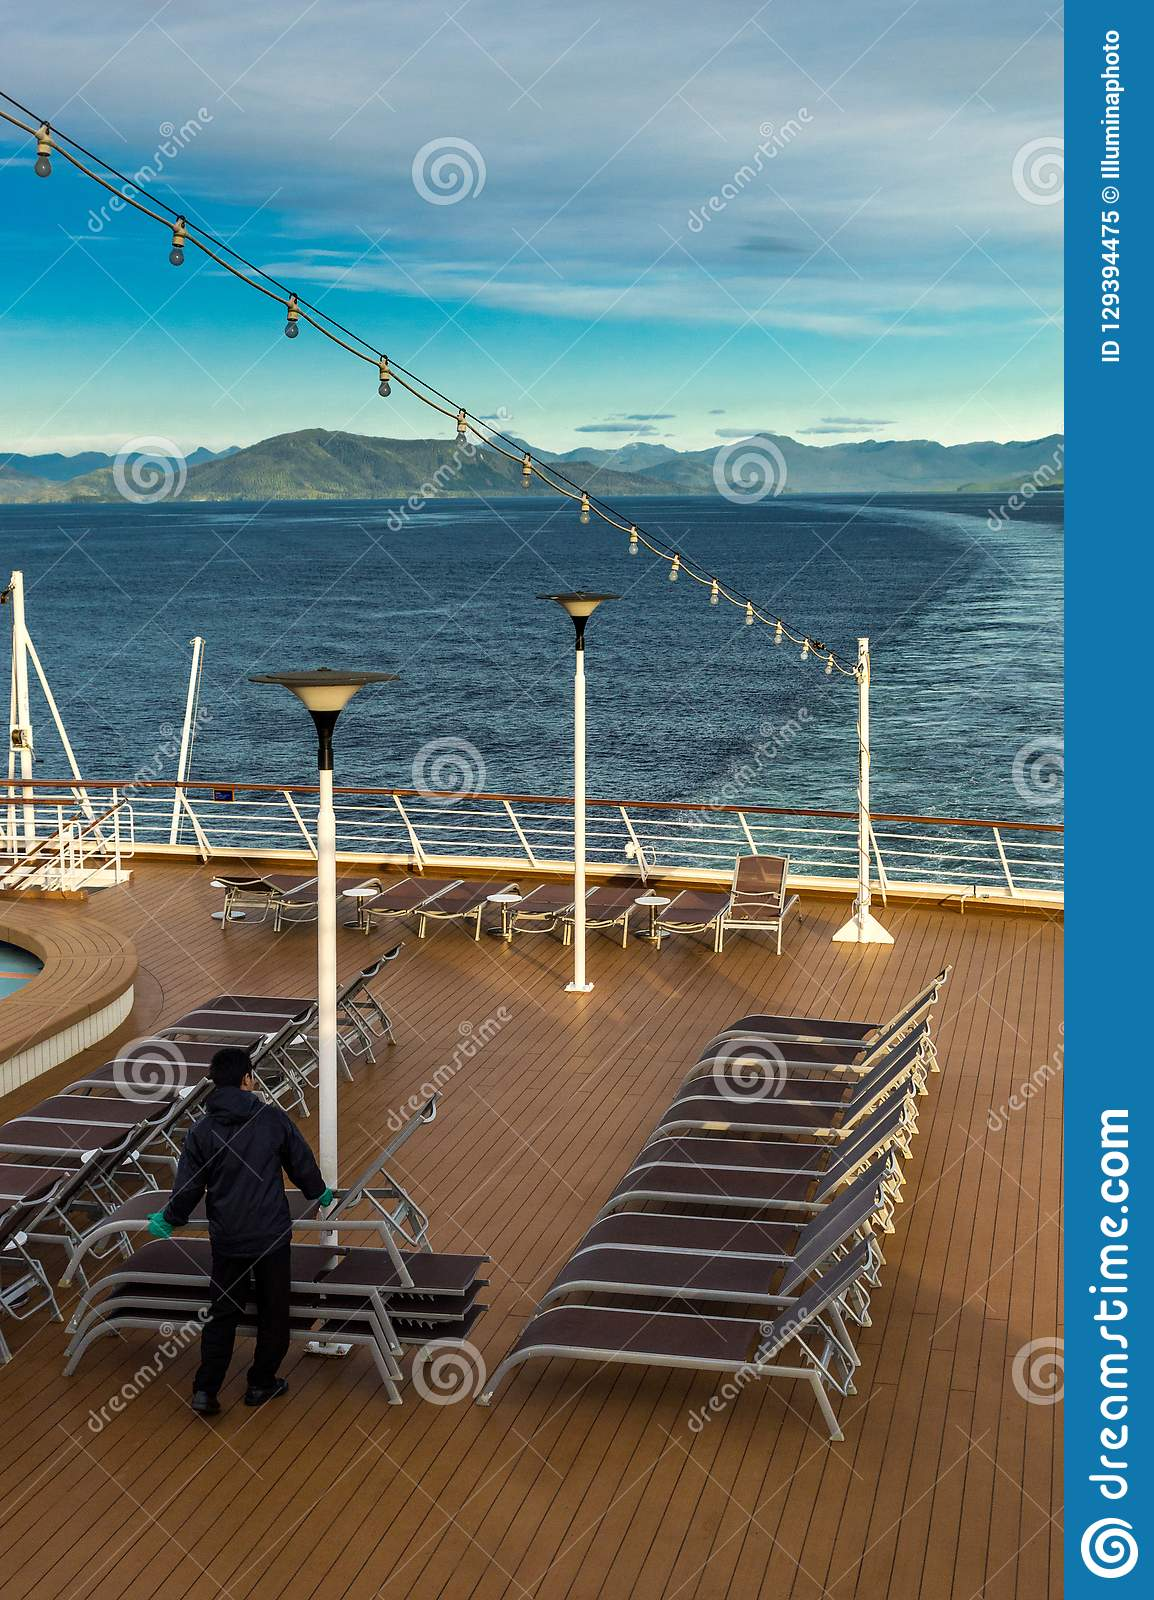 Inside Passage, BC, Canada - September 13, 2018: Cruise ship worker stacking outdoor loungers in the early evening.